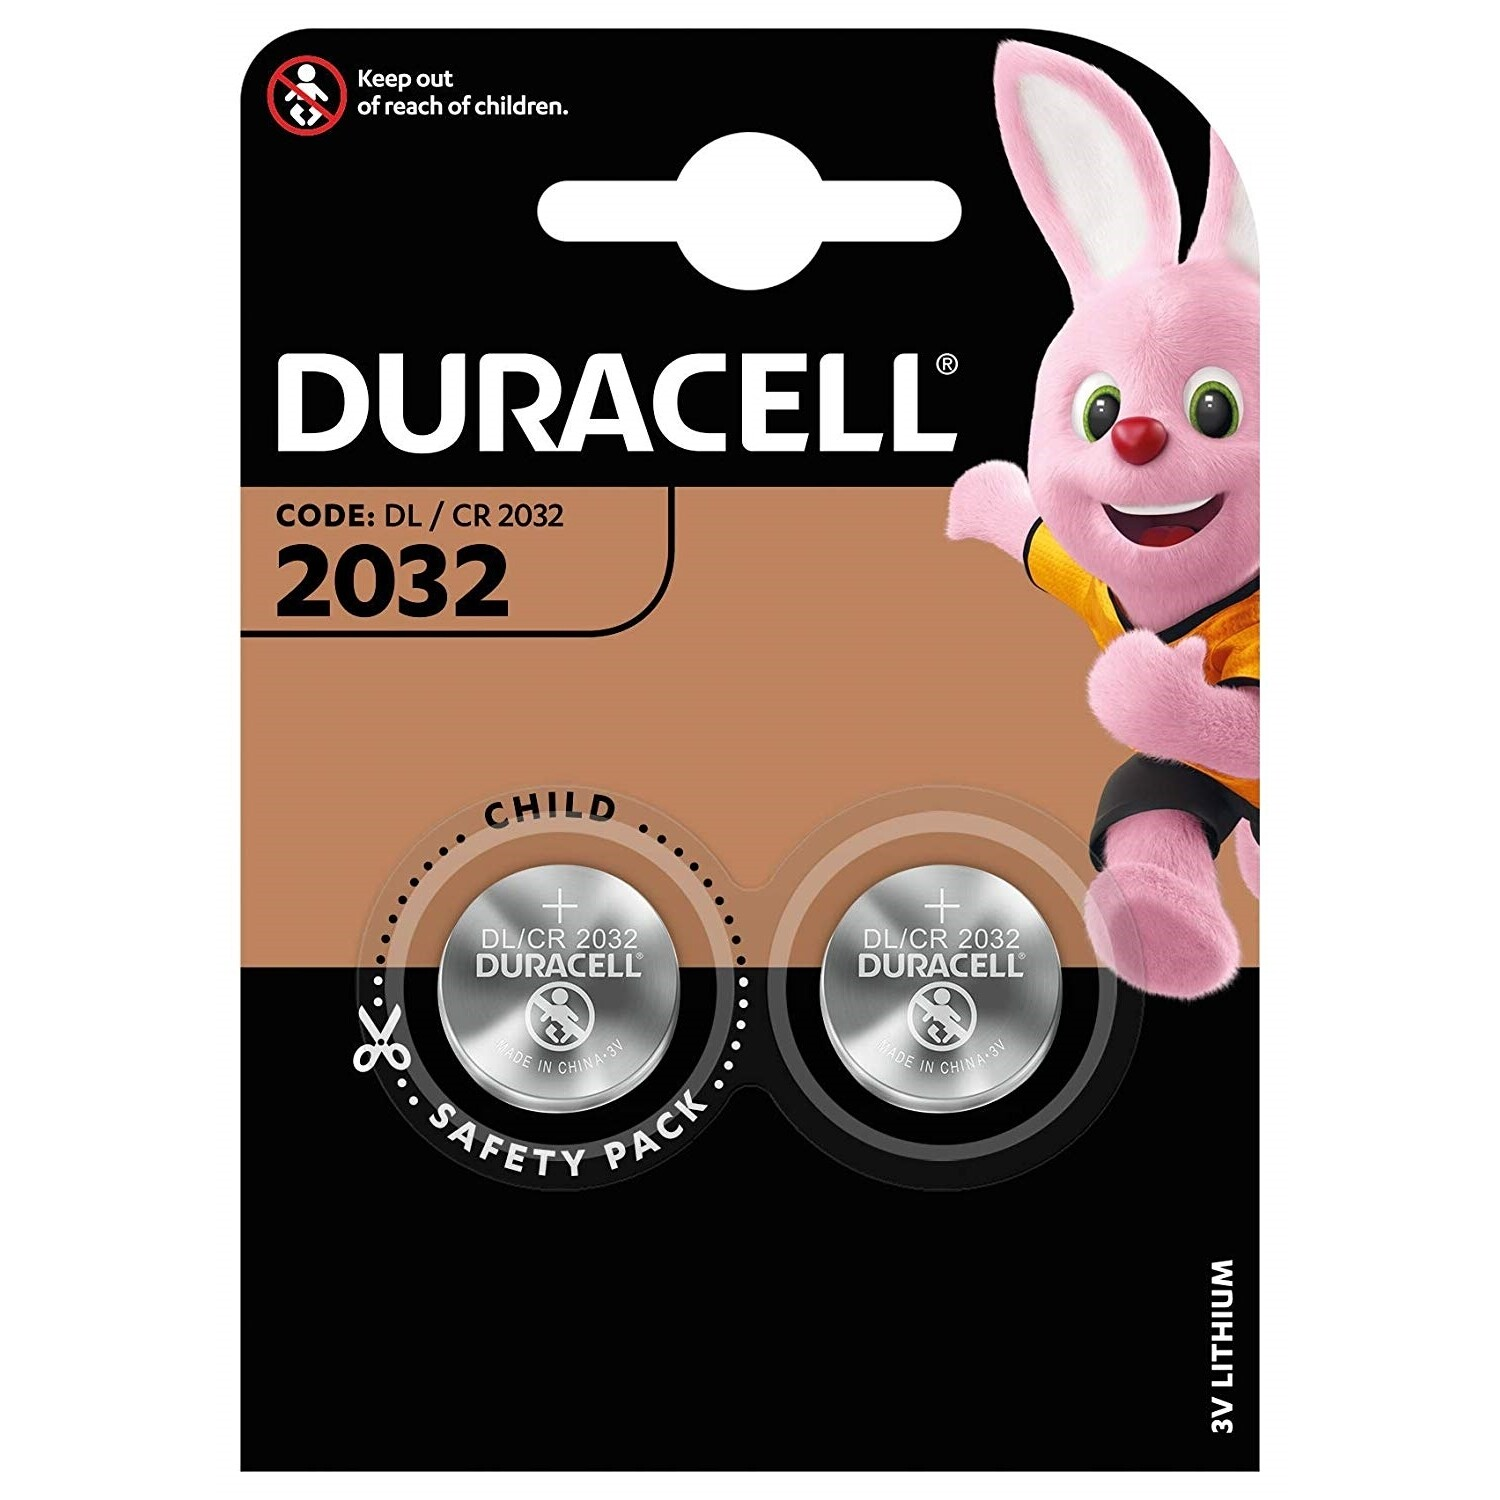 Batteria 2032 duracell plus power